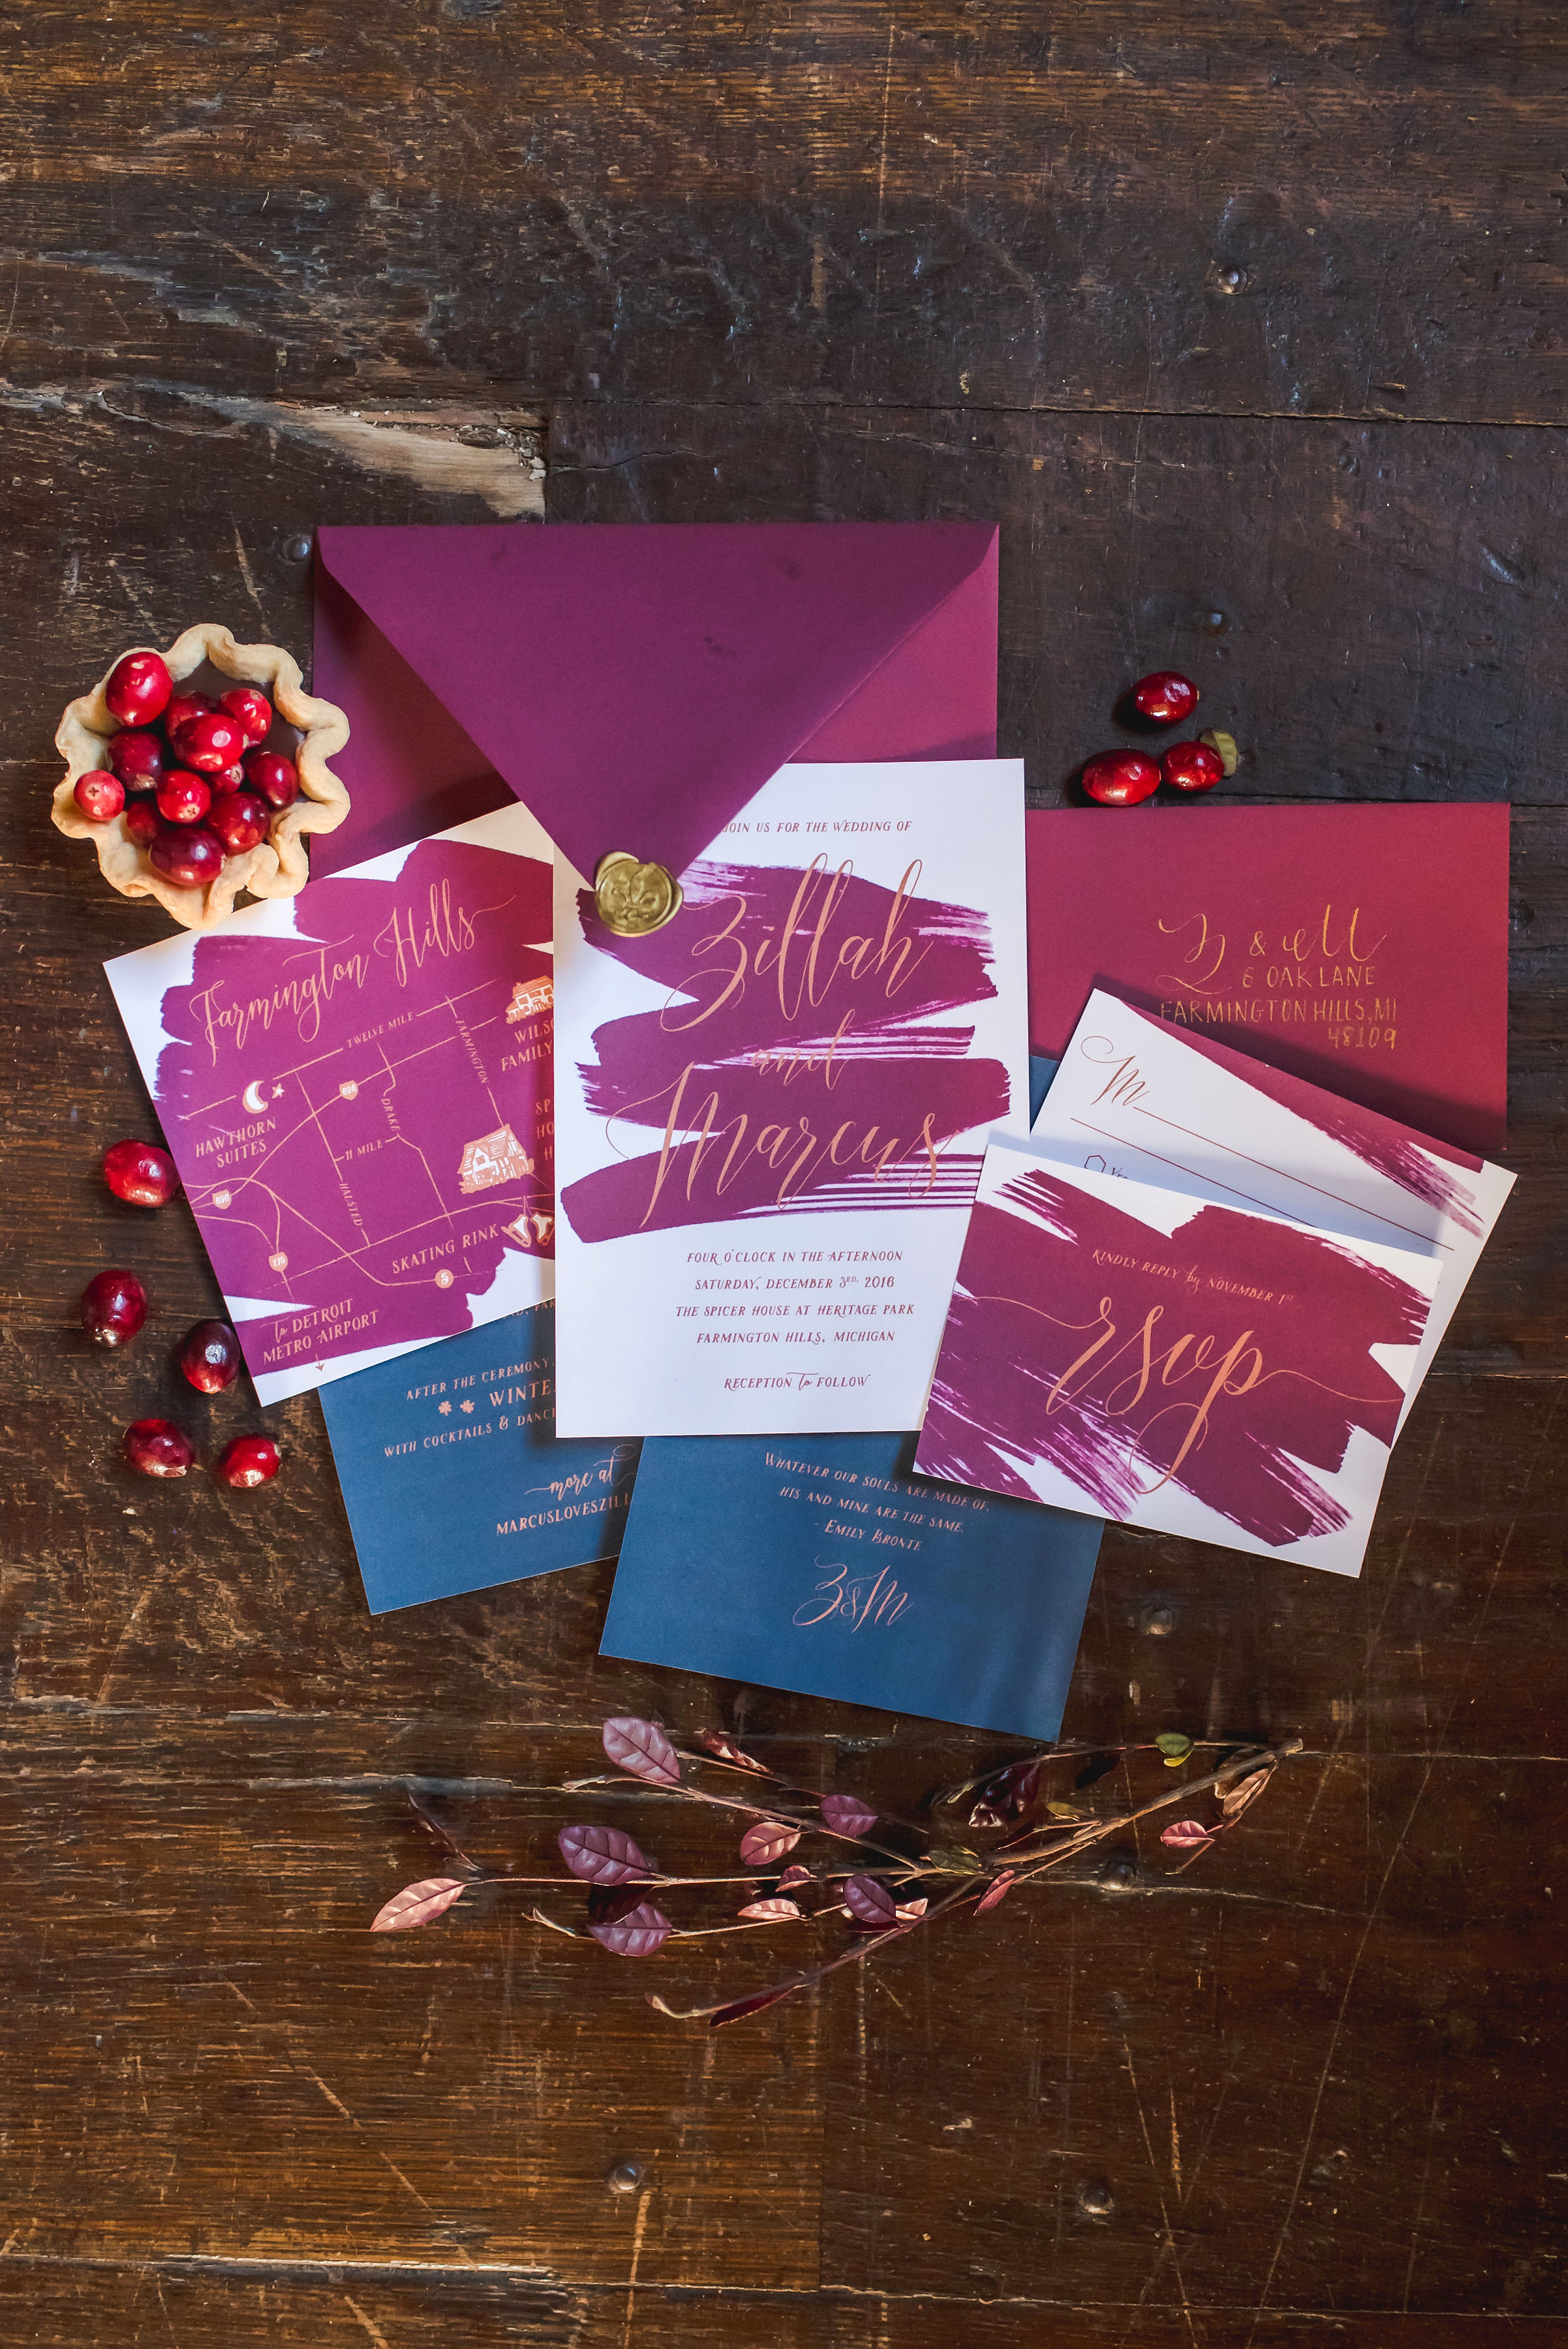 Calligraphy by  M.B. Calligraphy , Invitation Suite by  Alisa Bobzien , Photo by  E Schmidt Photography